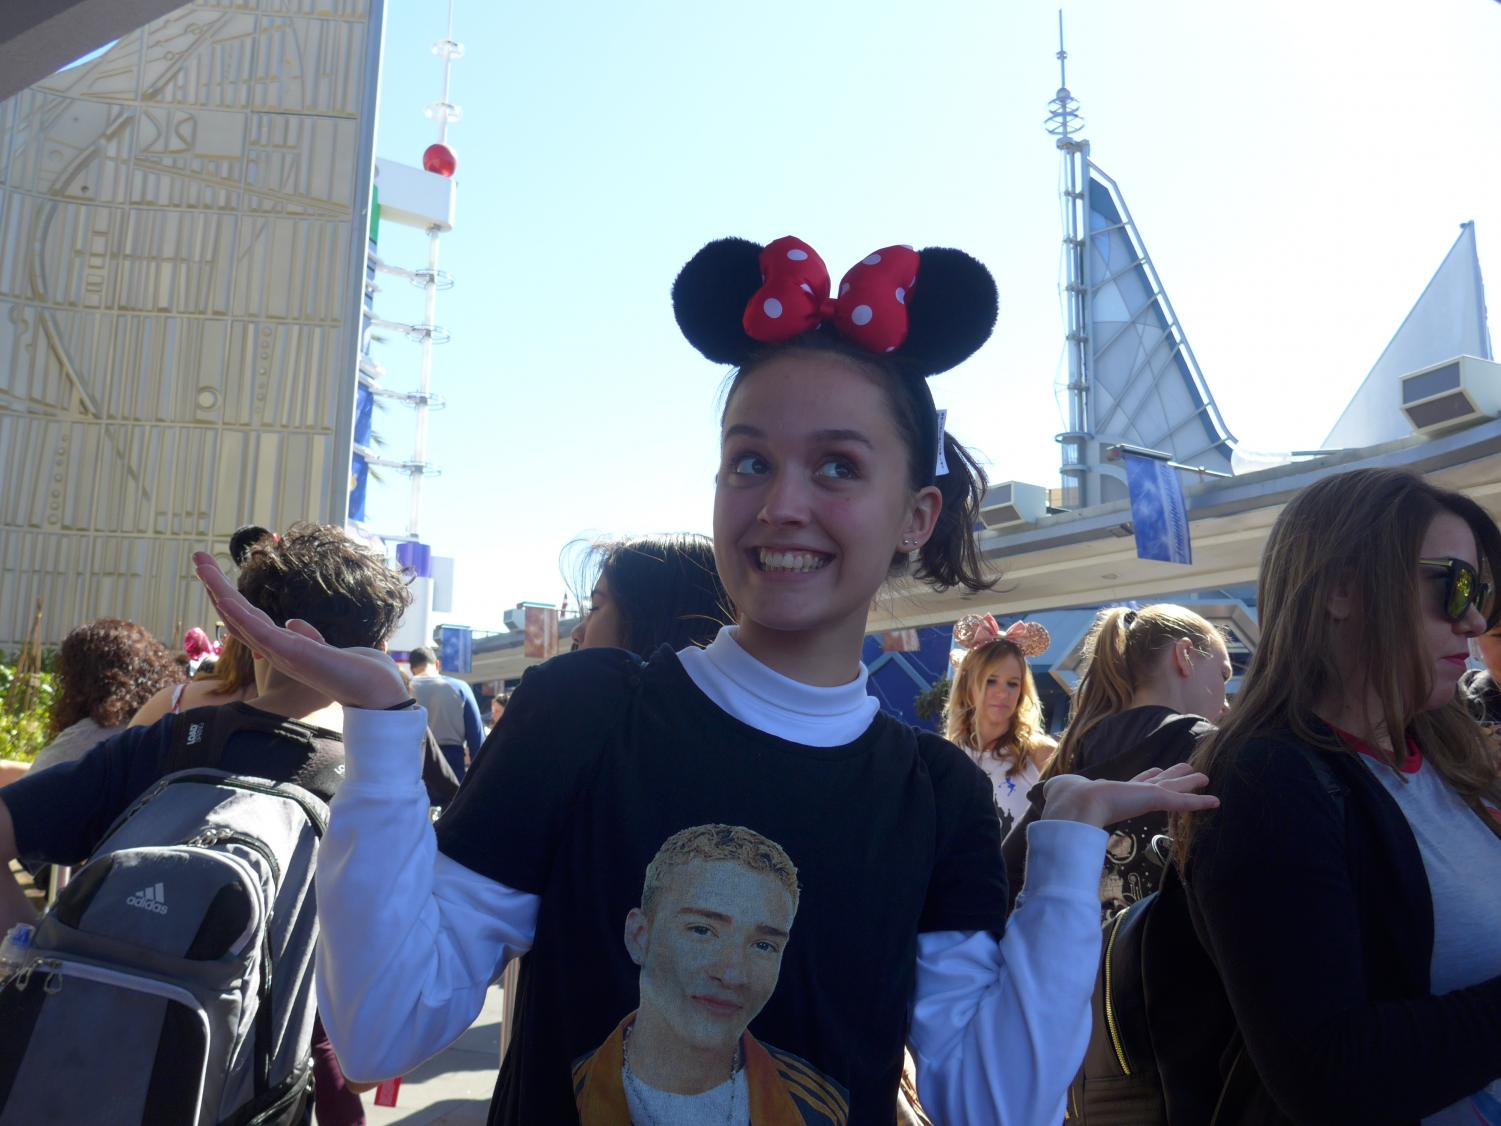 Sophomore Abby Green shows off her ears while waiting in line for rides at Disneyland. On Sunday, the final full day in California, students were given the choice to either go to the main Disneyland park or to California Adventure Park and enjoy food, music, and fun. Photo by Kristen Tibbetts